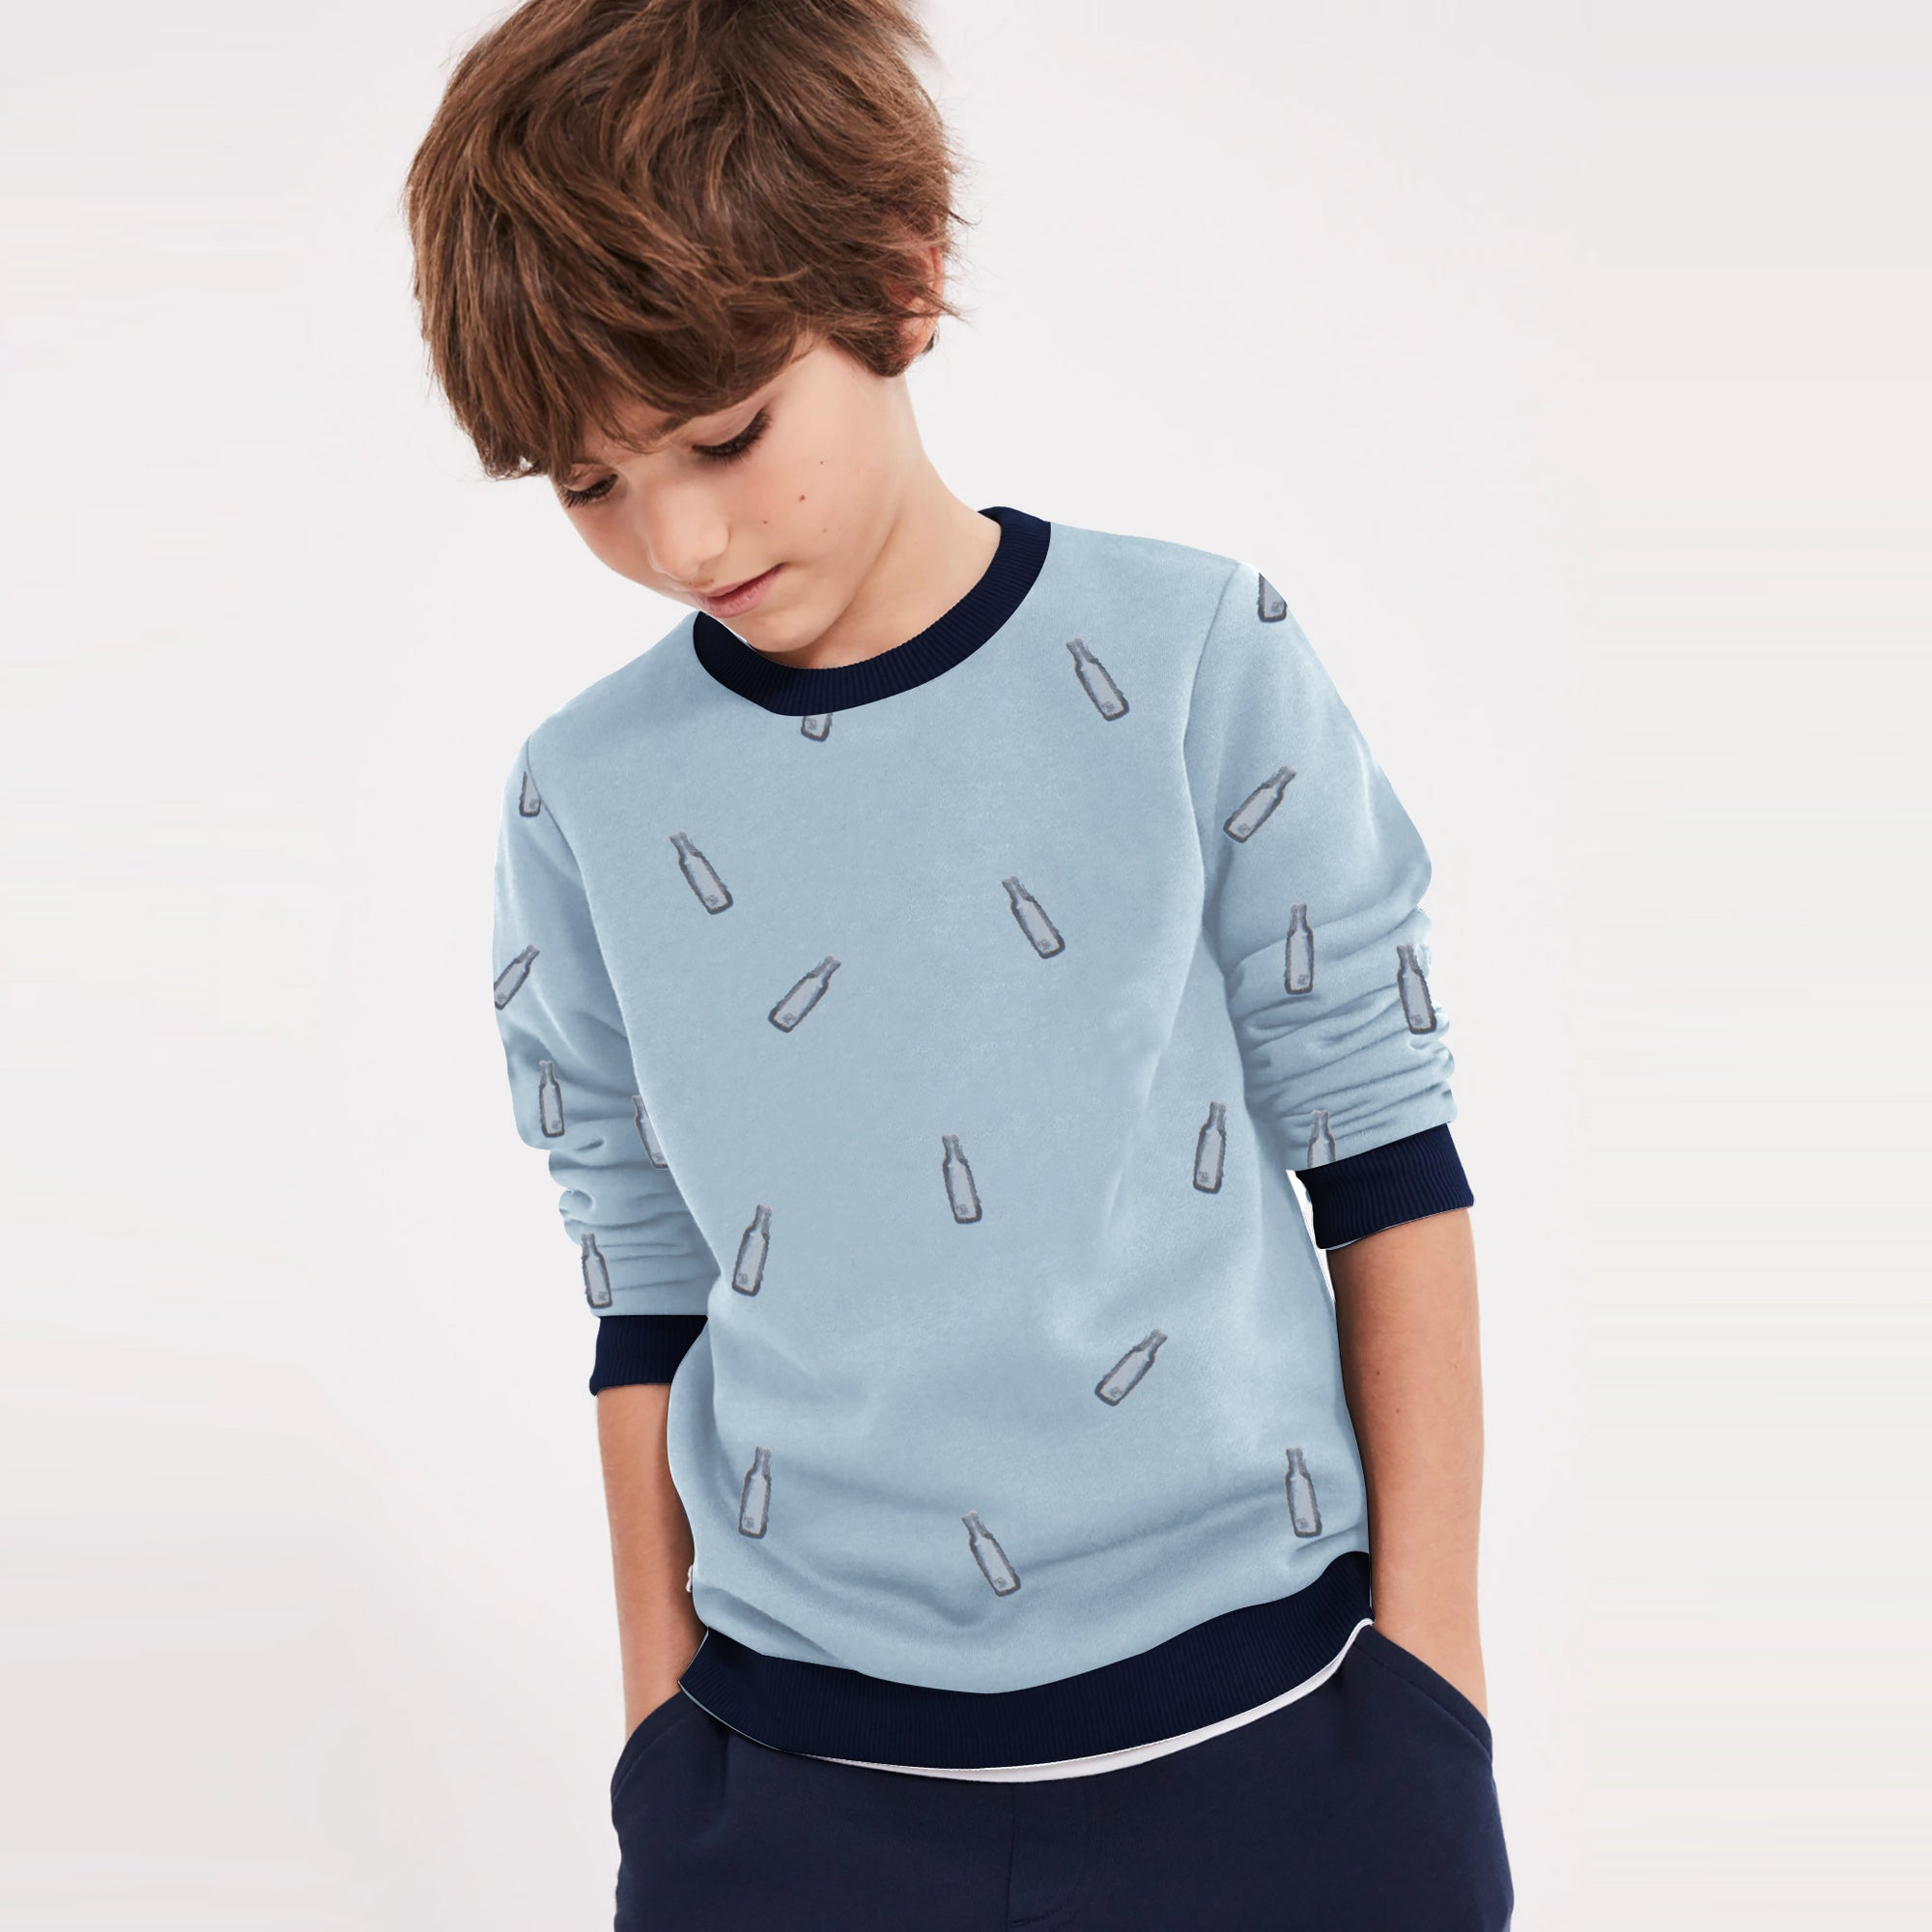 Tommy Hilfiger Fleece Crew Neck Sweatshirt For Kids-Cyan & Dark Navy-SP1372